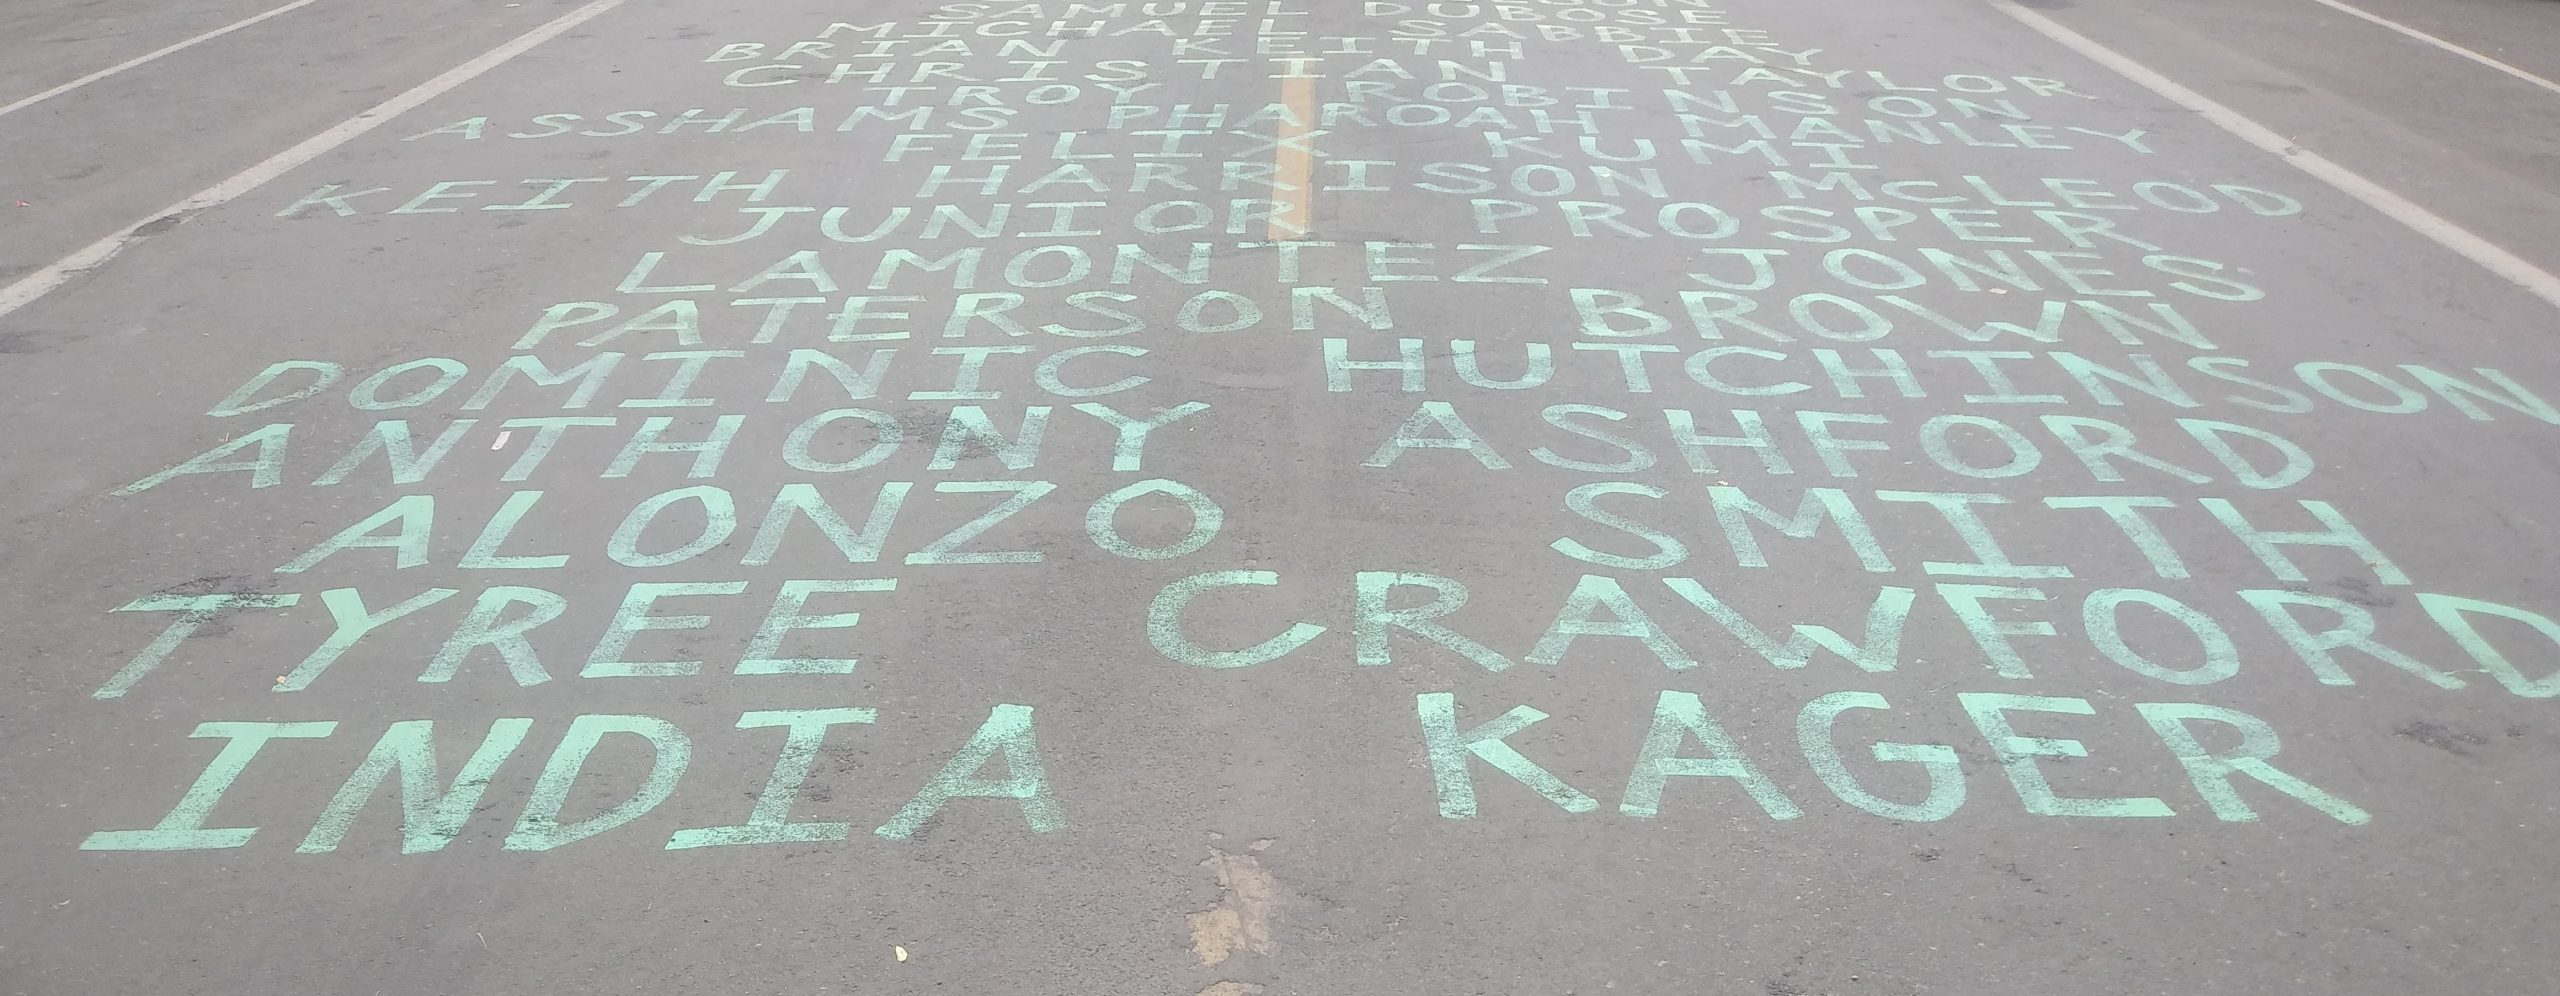 Between June 2 and June 4, Mari Hernandez painted 34 more names to the list running down Chicago Avenue